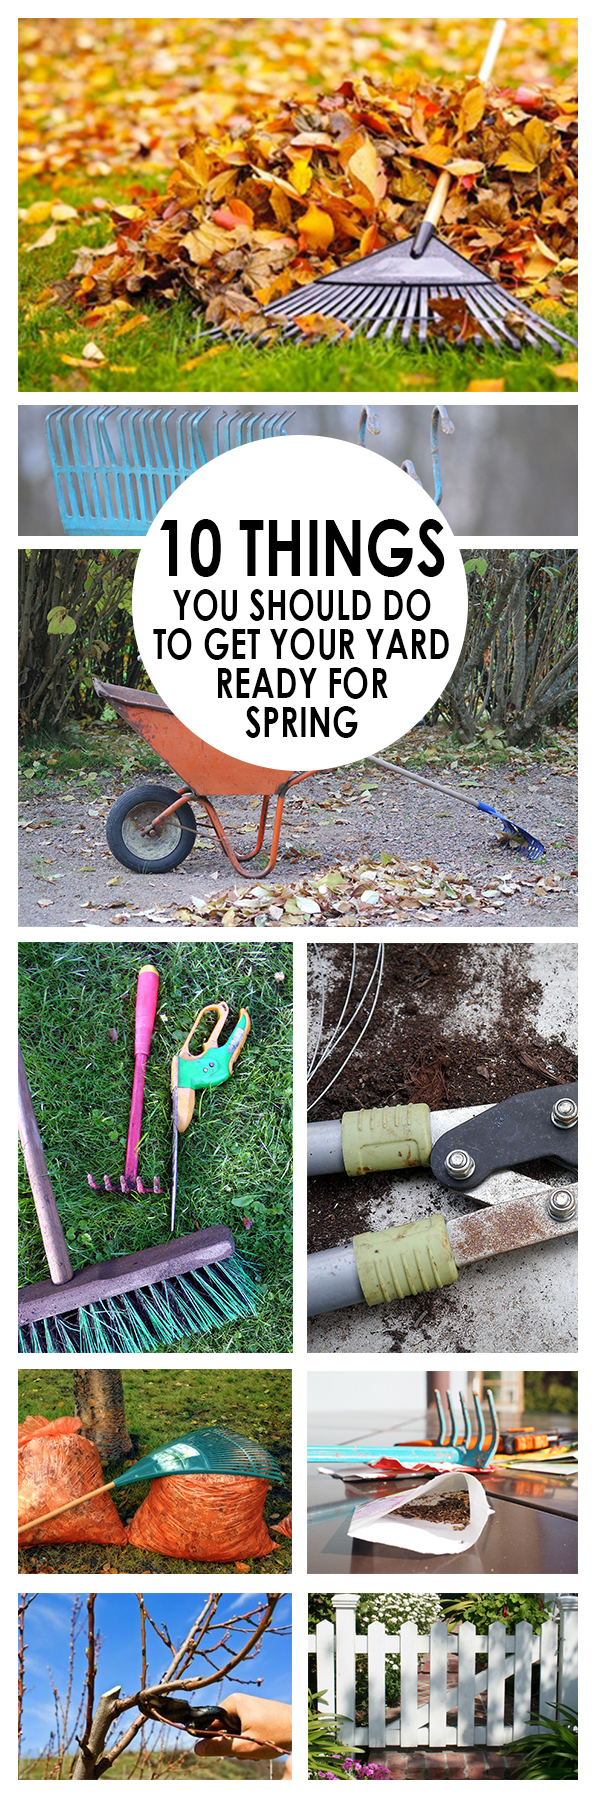 10 Things You Should Do to get Your Yard Ready For Spring (1)